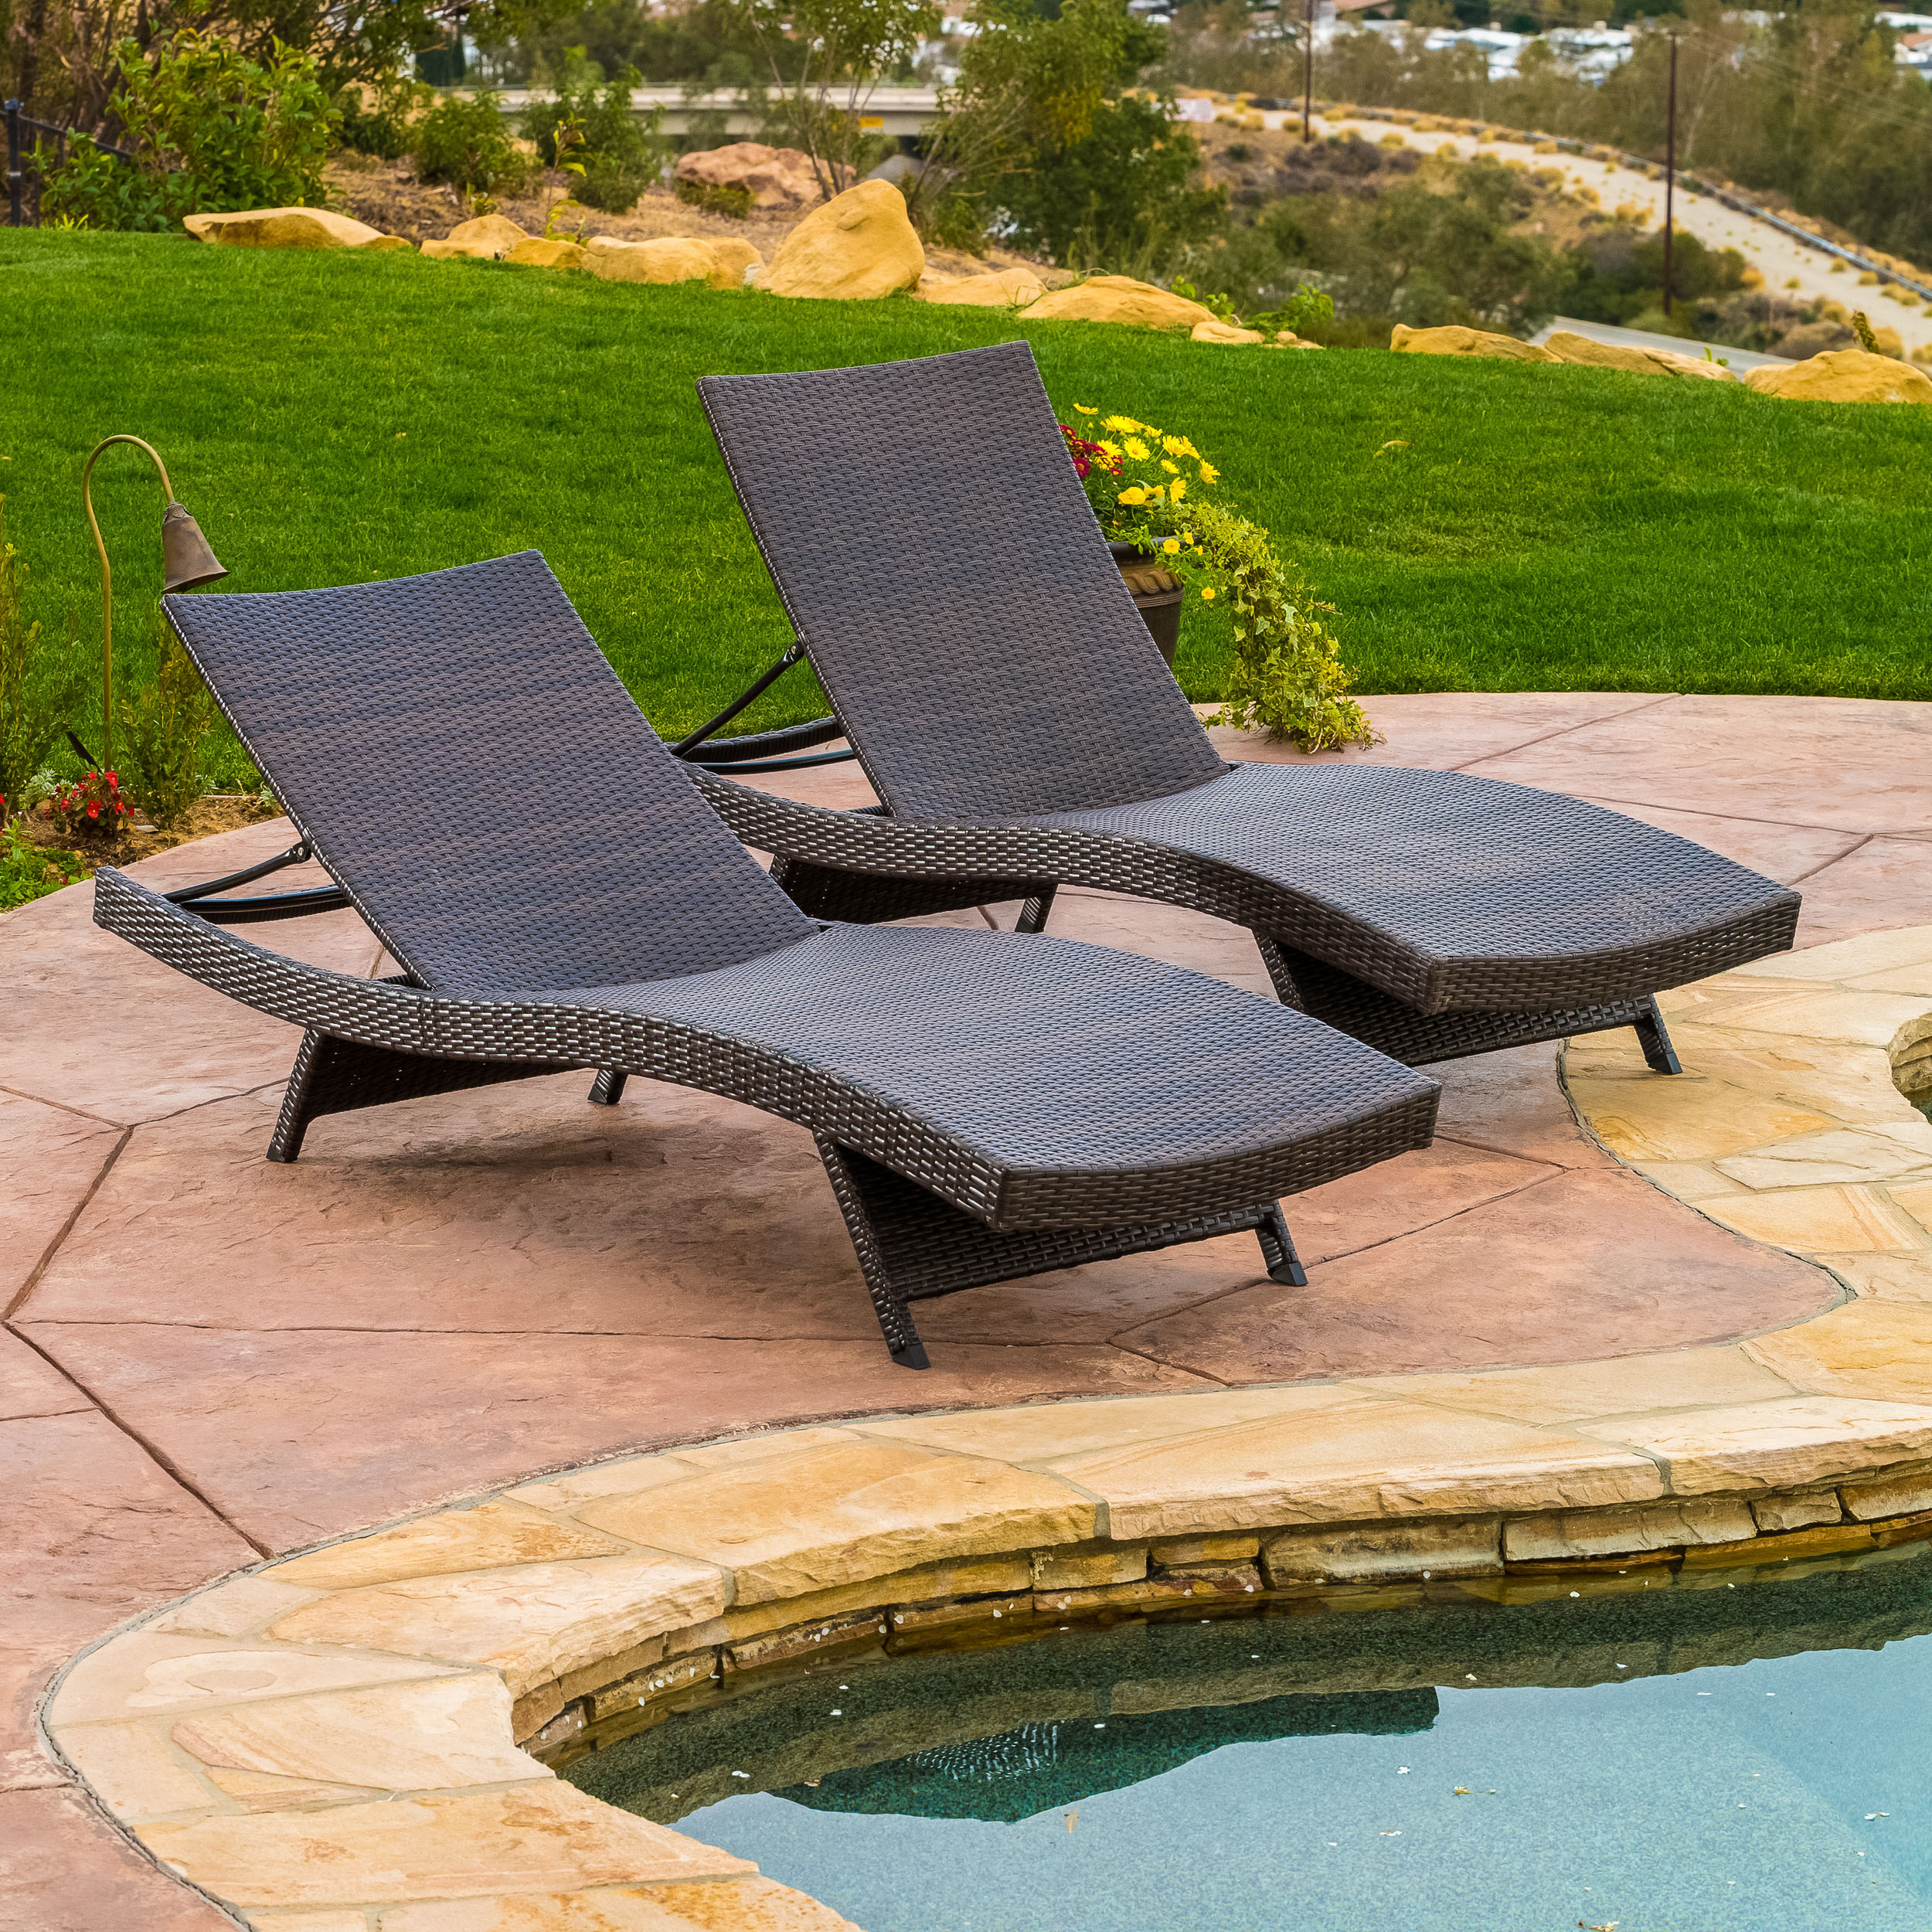 Berkeley Outdoor Brown Wicker Adjustable Chaise Lounge Chair (Set of 2)